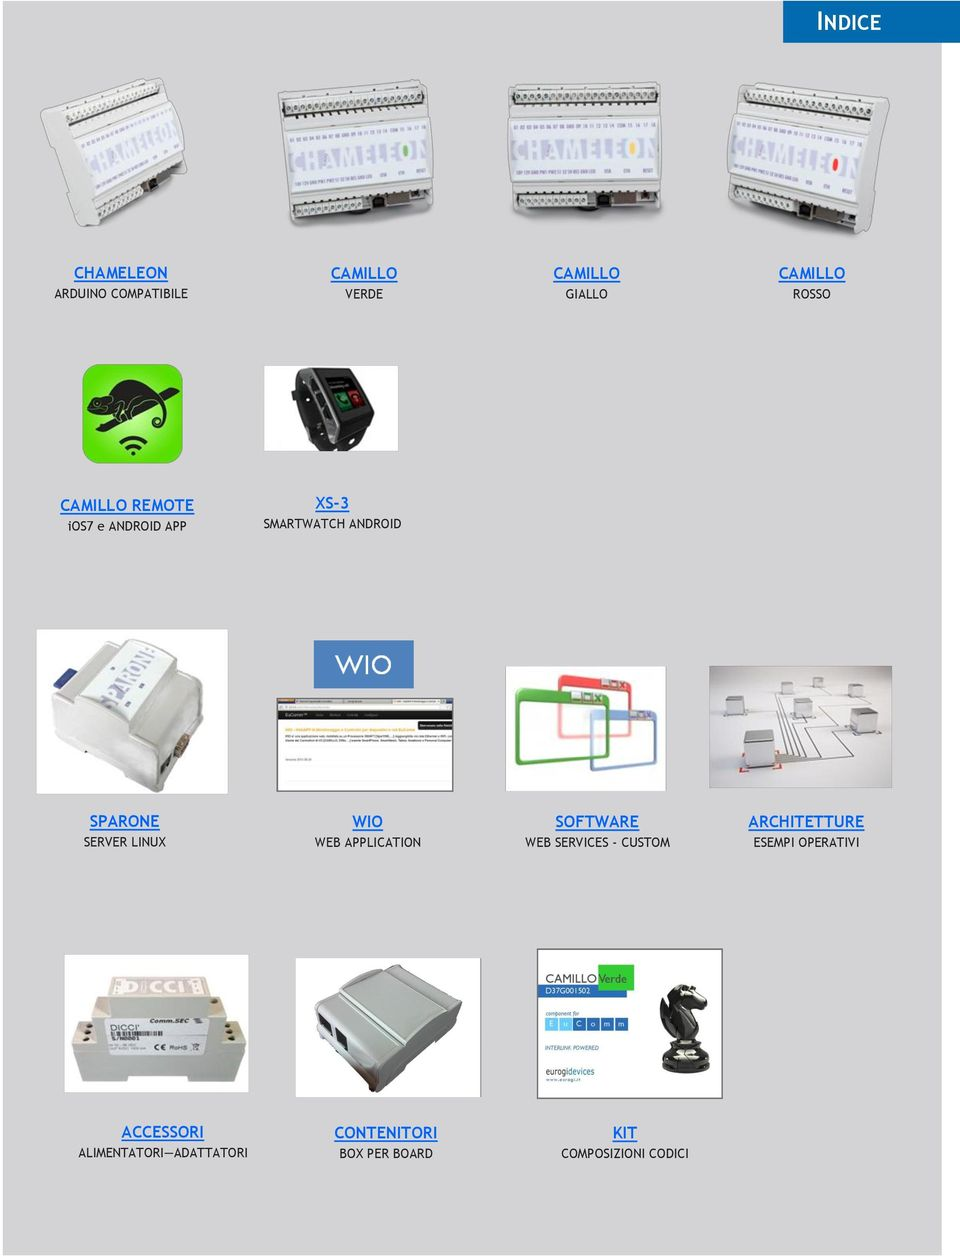 WIO WEB APPLICATION SOFTWARE WEB SERVICES - CUSTOM ARCHITETTURE ESEMPI OPERATIVI